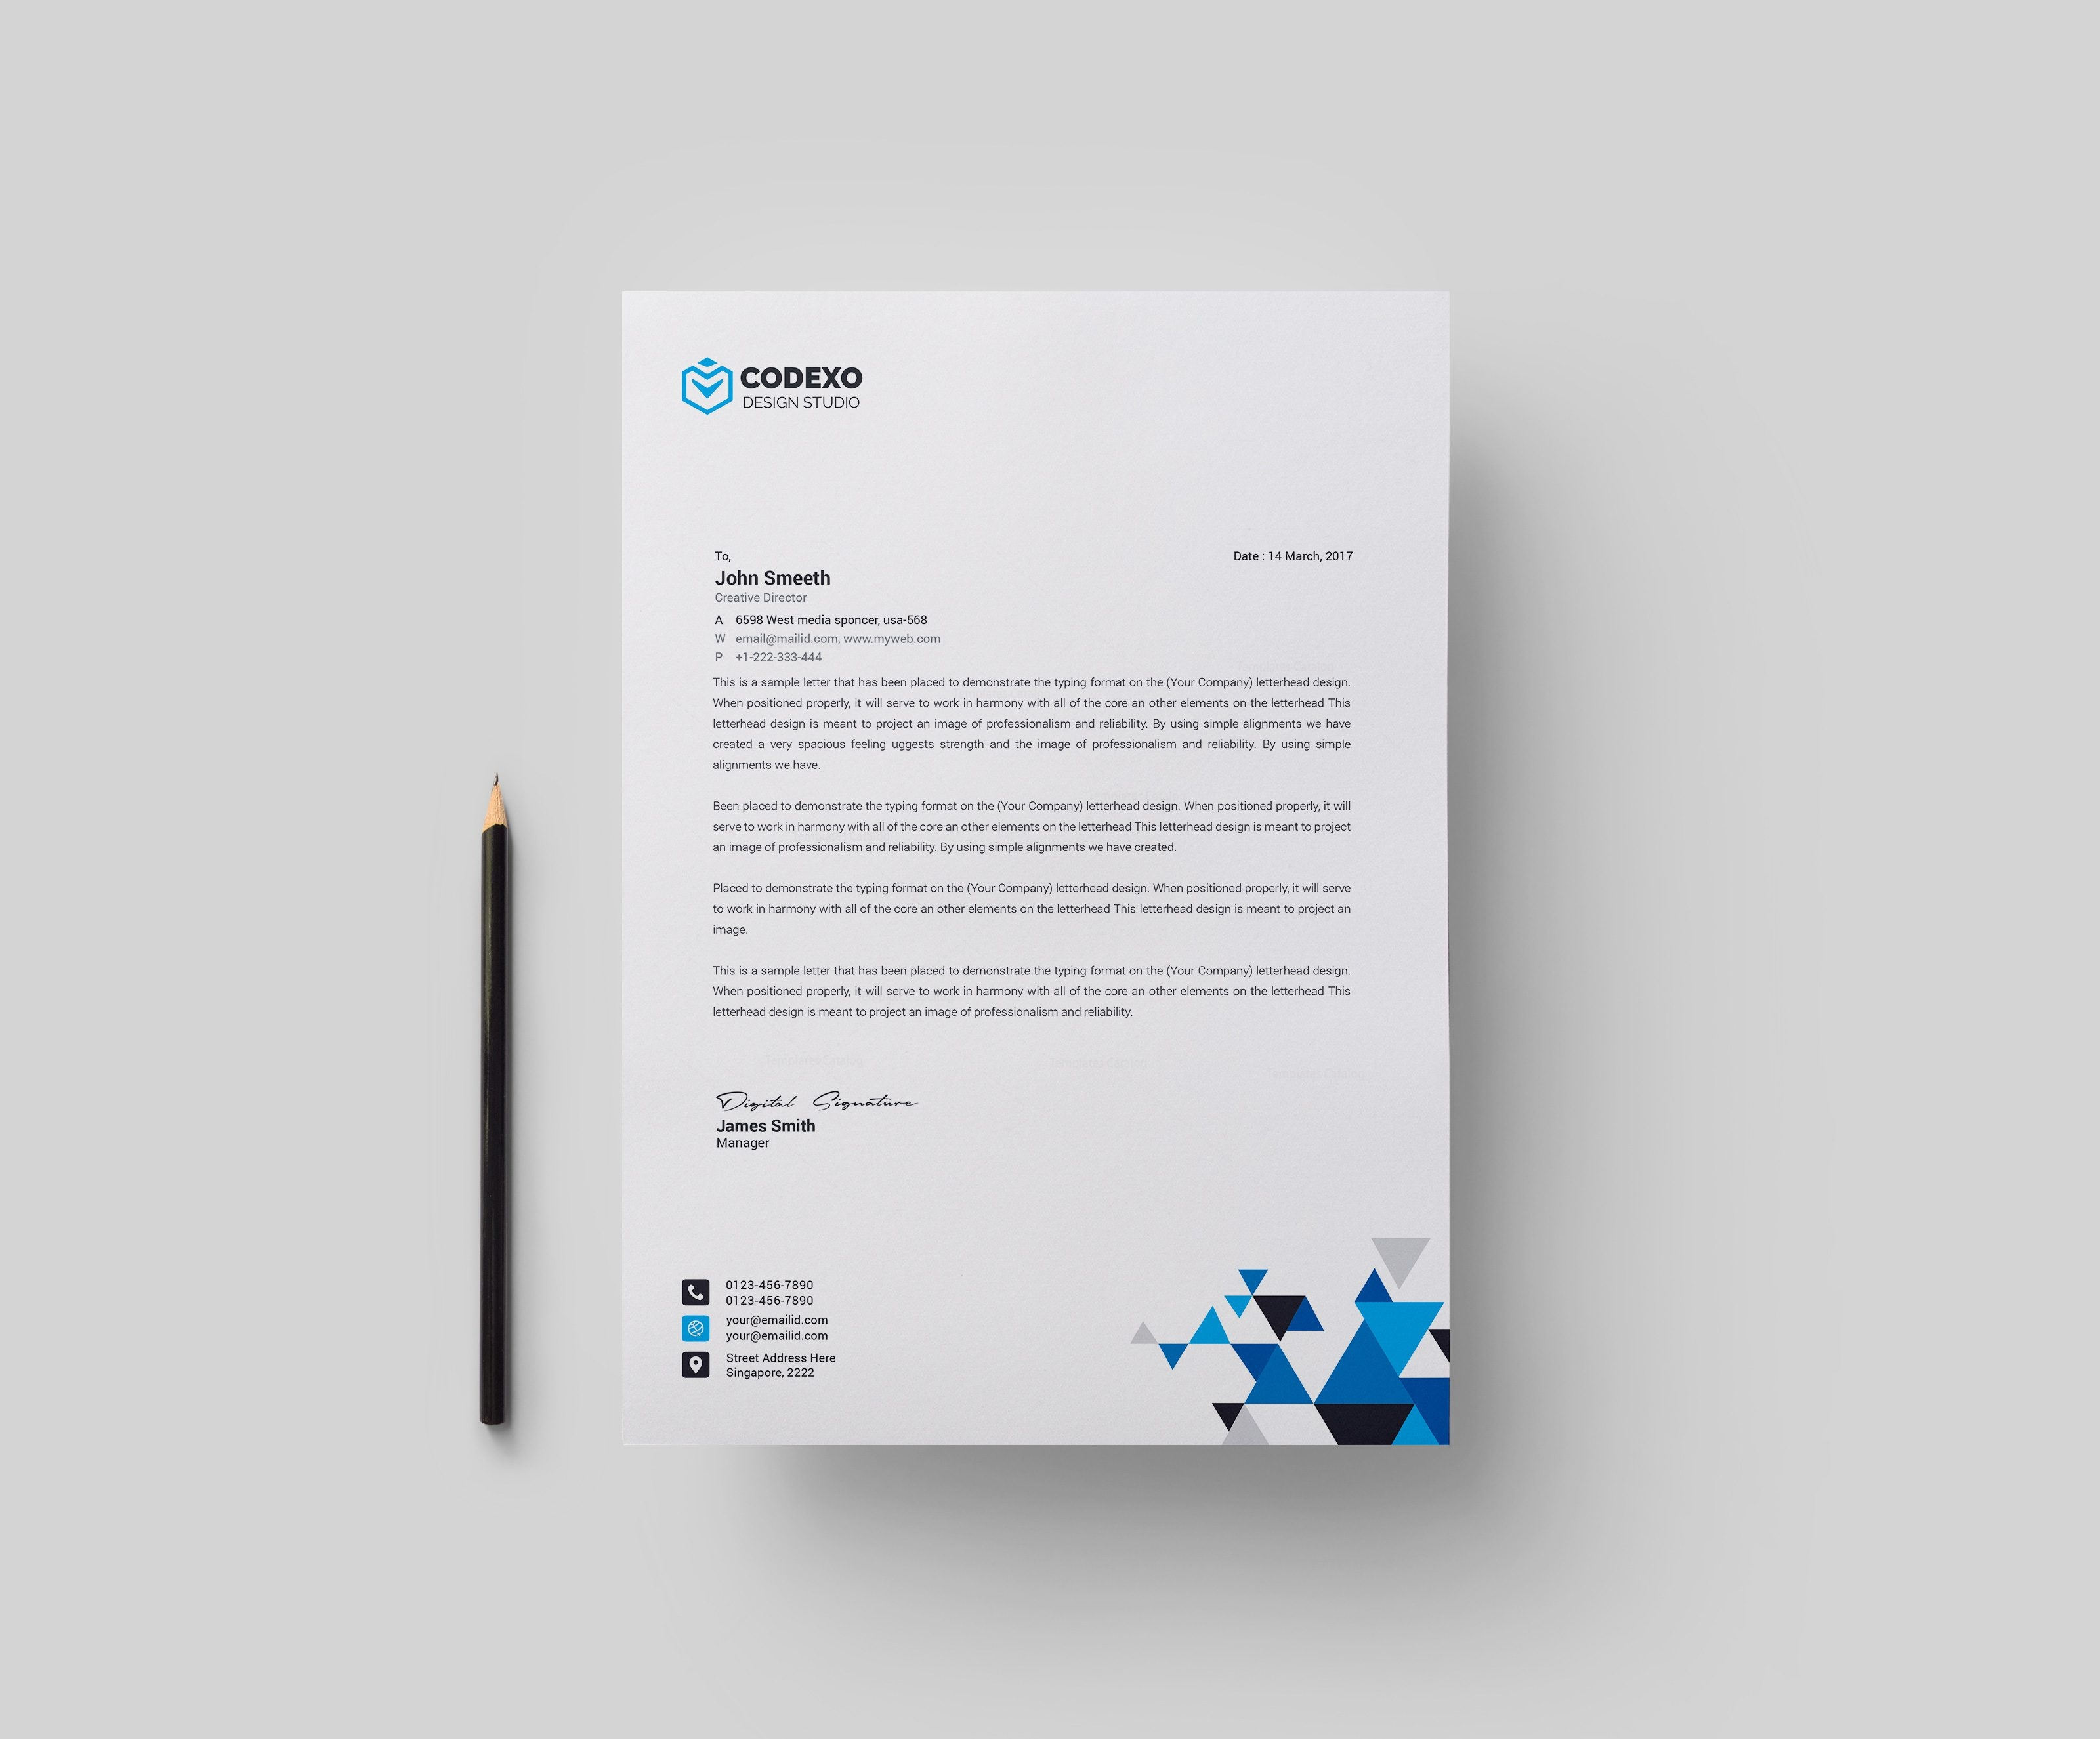 format of letter head of professional